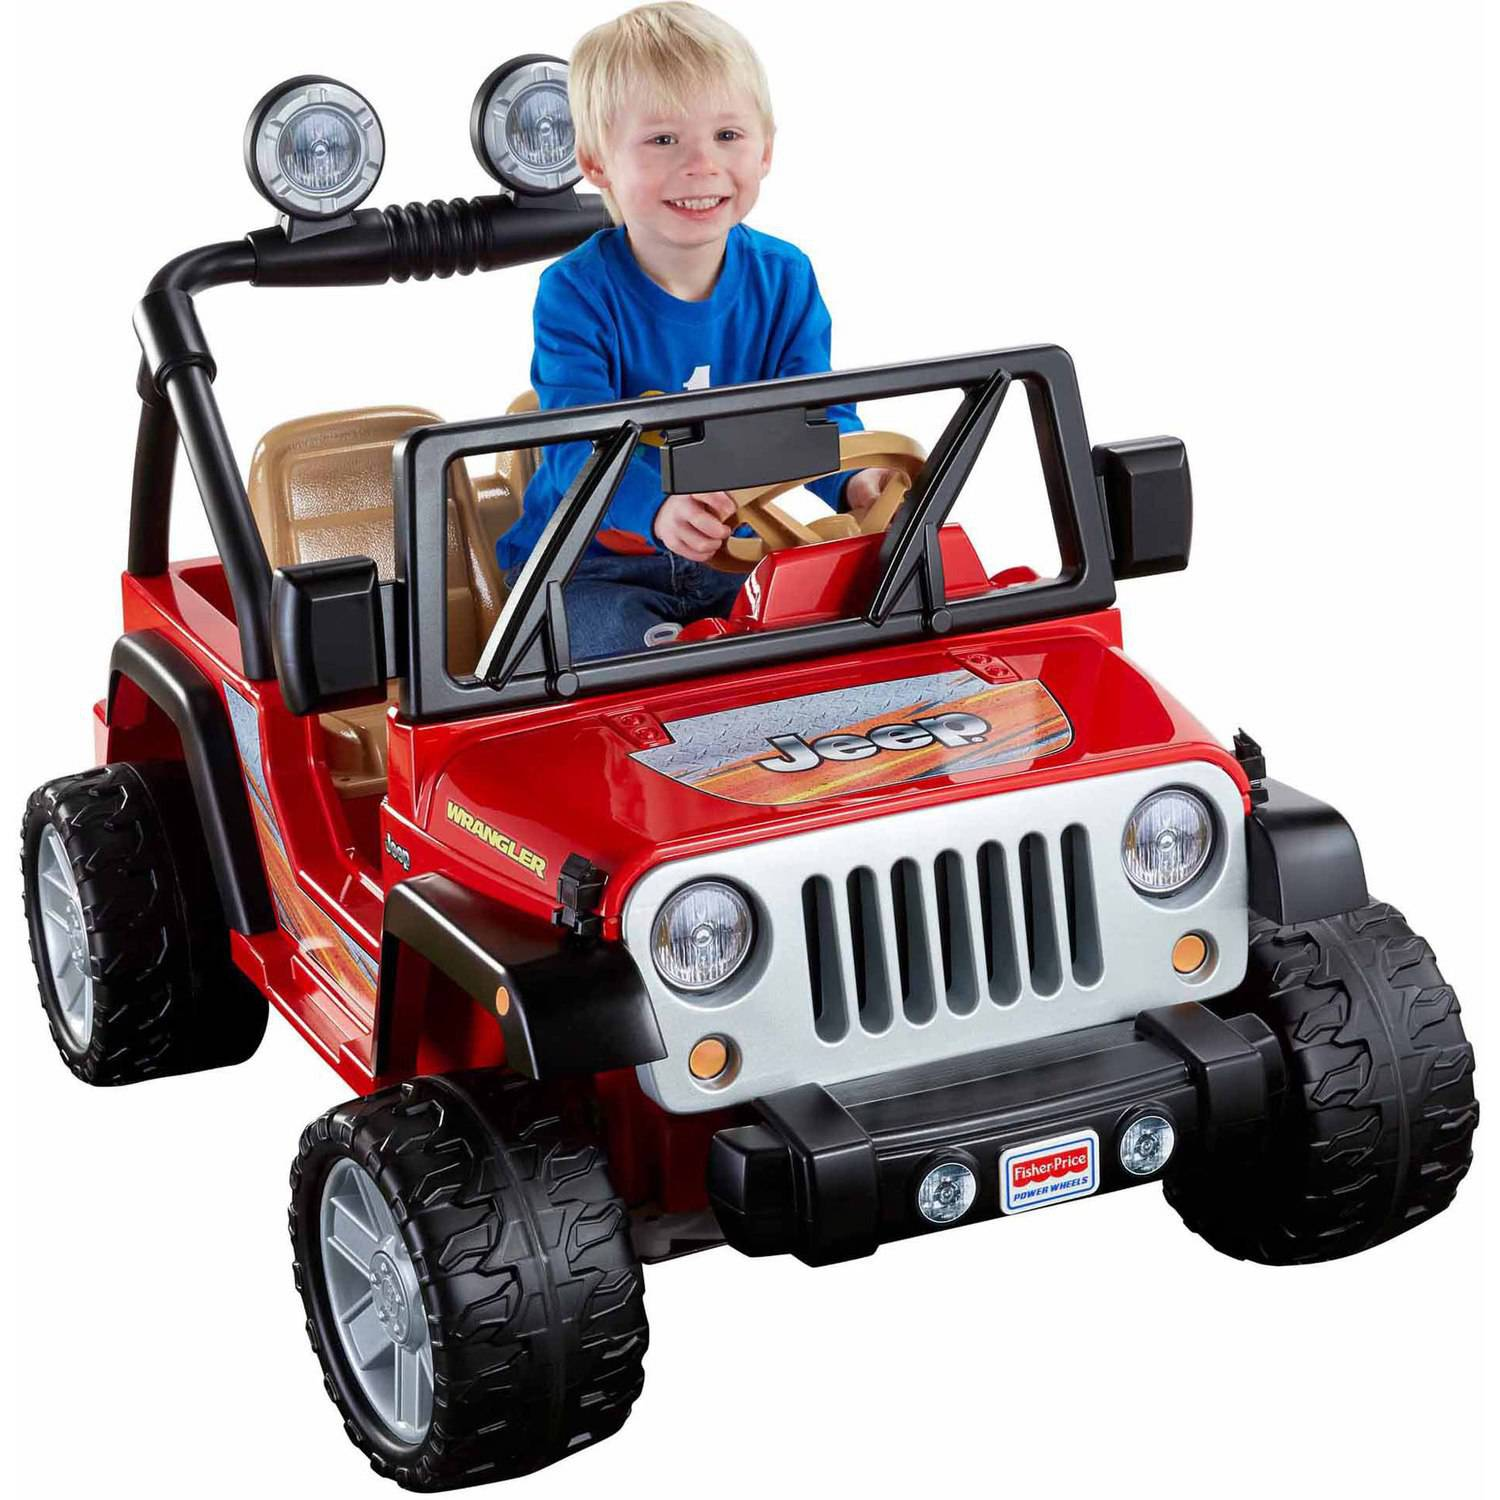 Kids Ride On Jeep Unique Power Wheels Jeep Wrangler 12 Volt Battery Powered Ride On Red